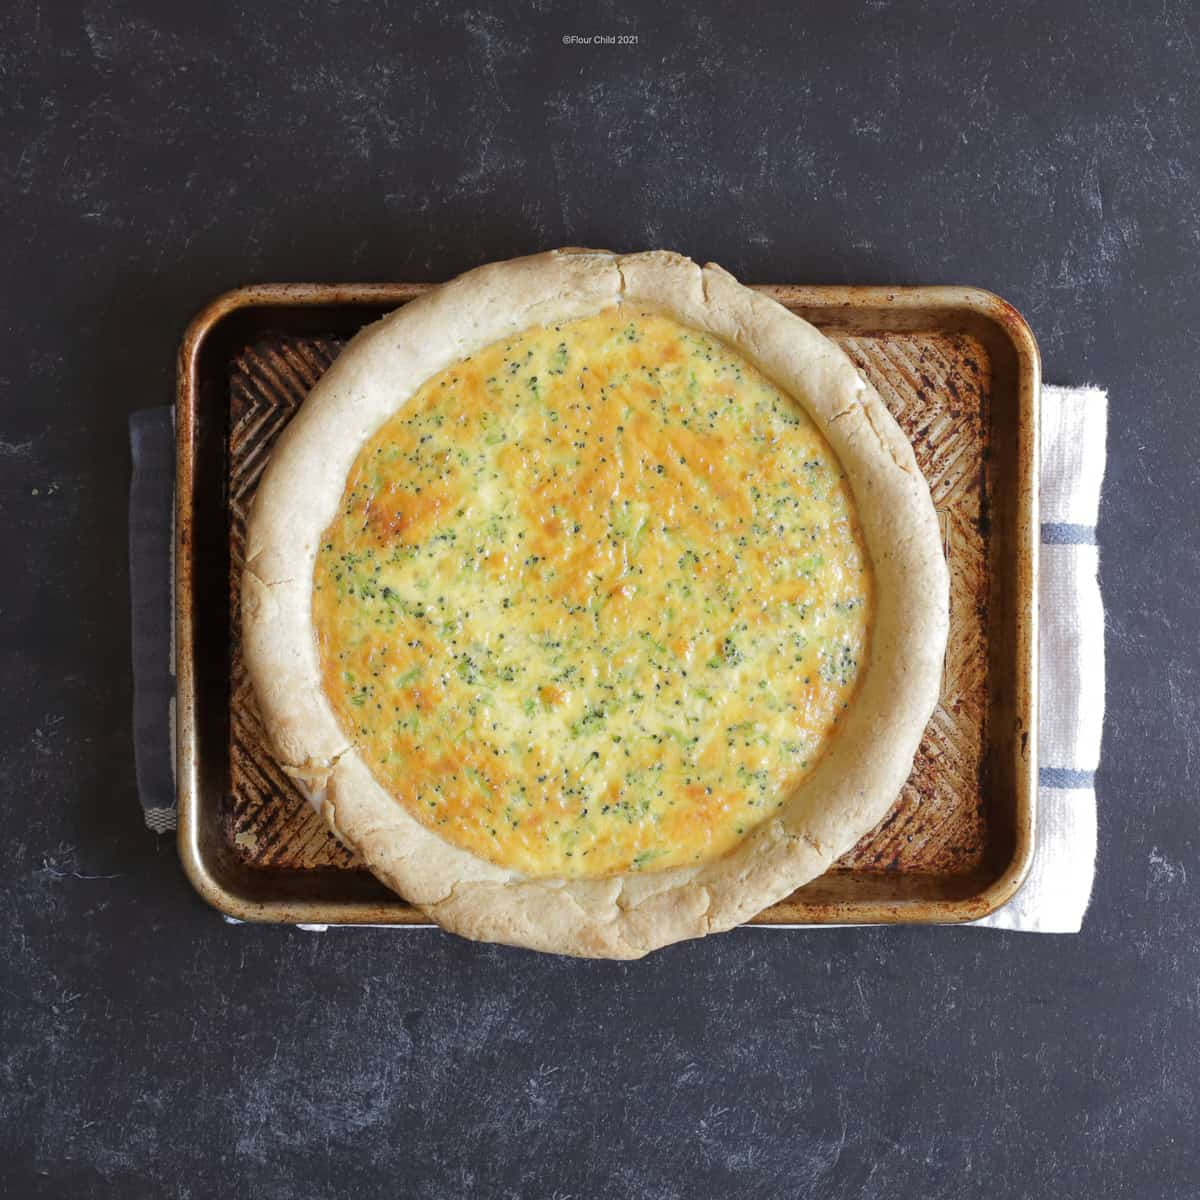 Baked quiche just removed from the oven